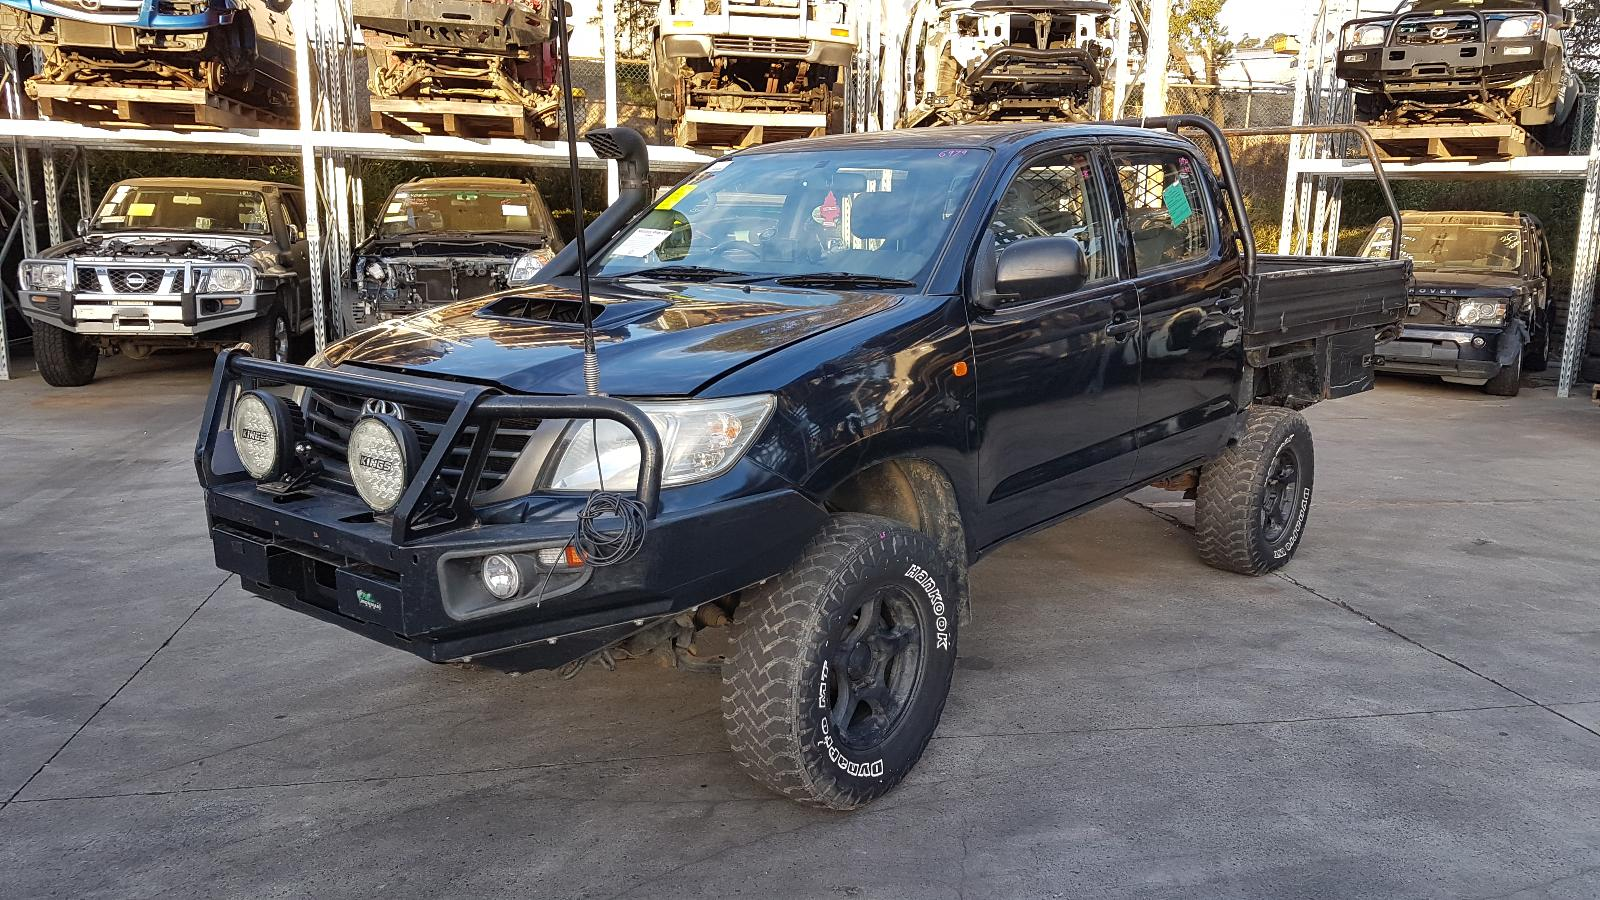 Image for a Toyota Hilux 2012 4 Door Pickup